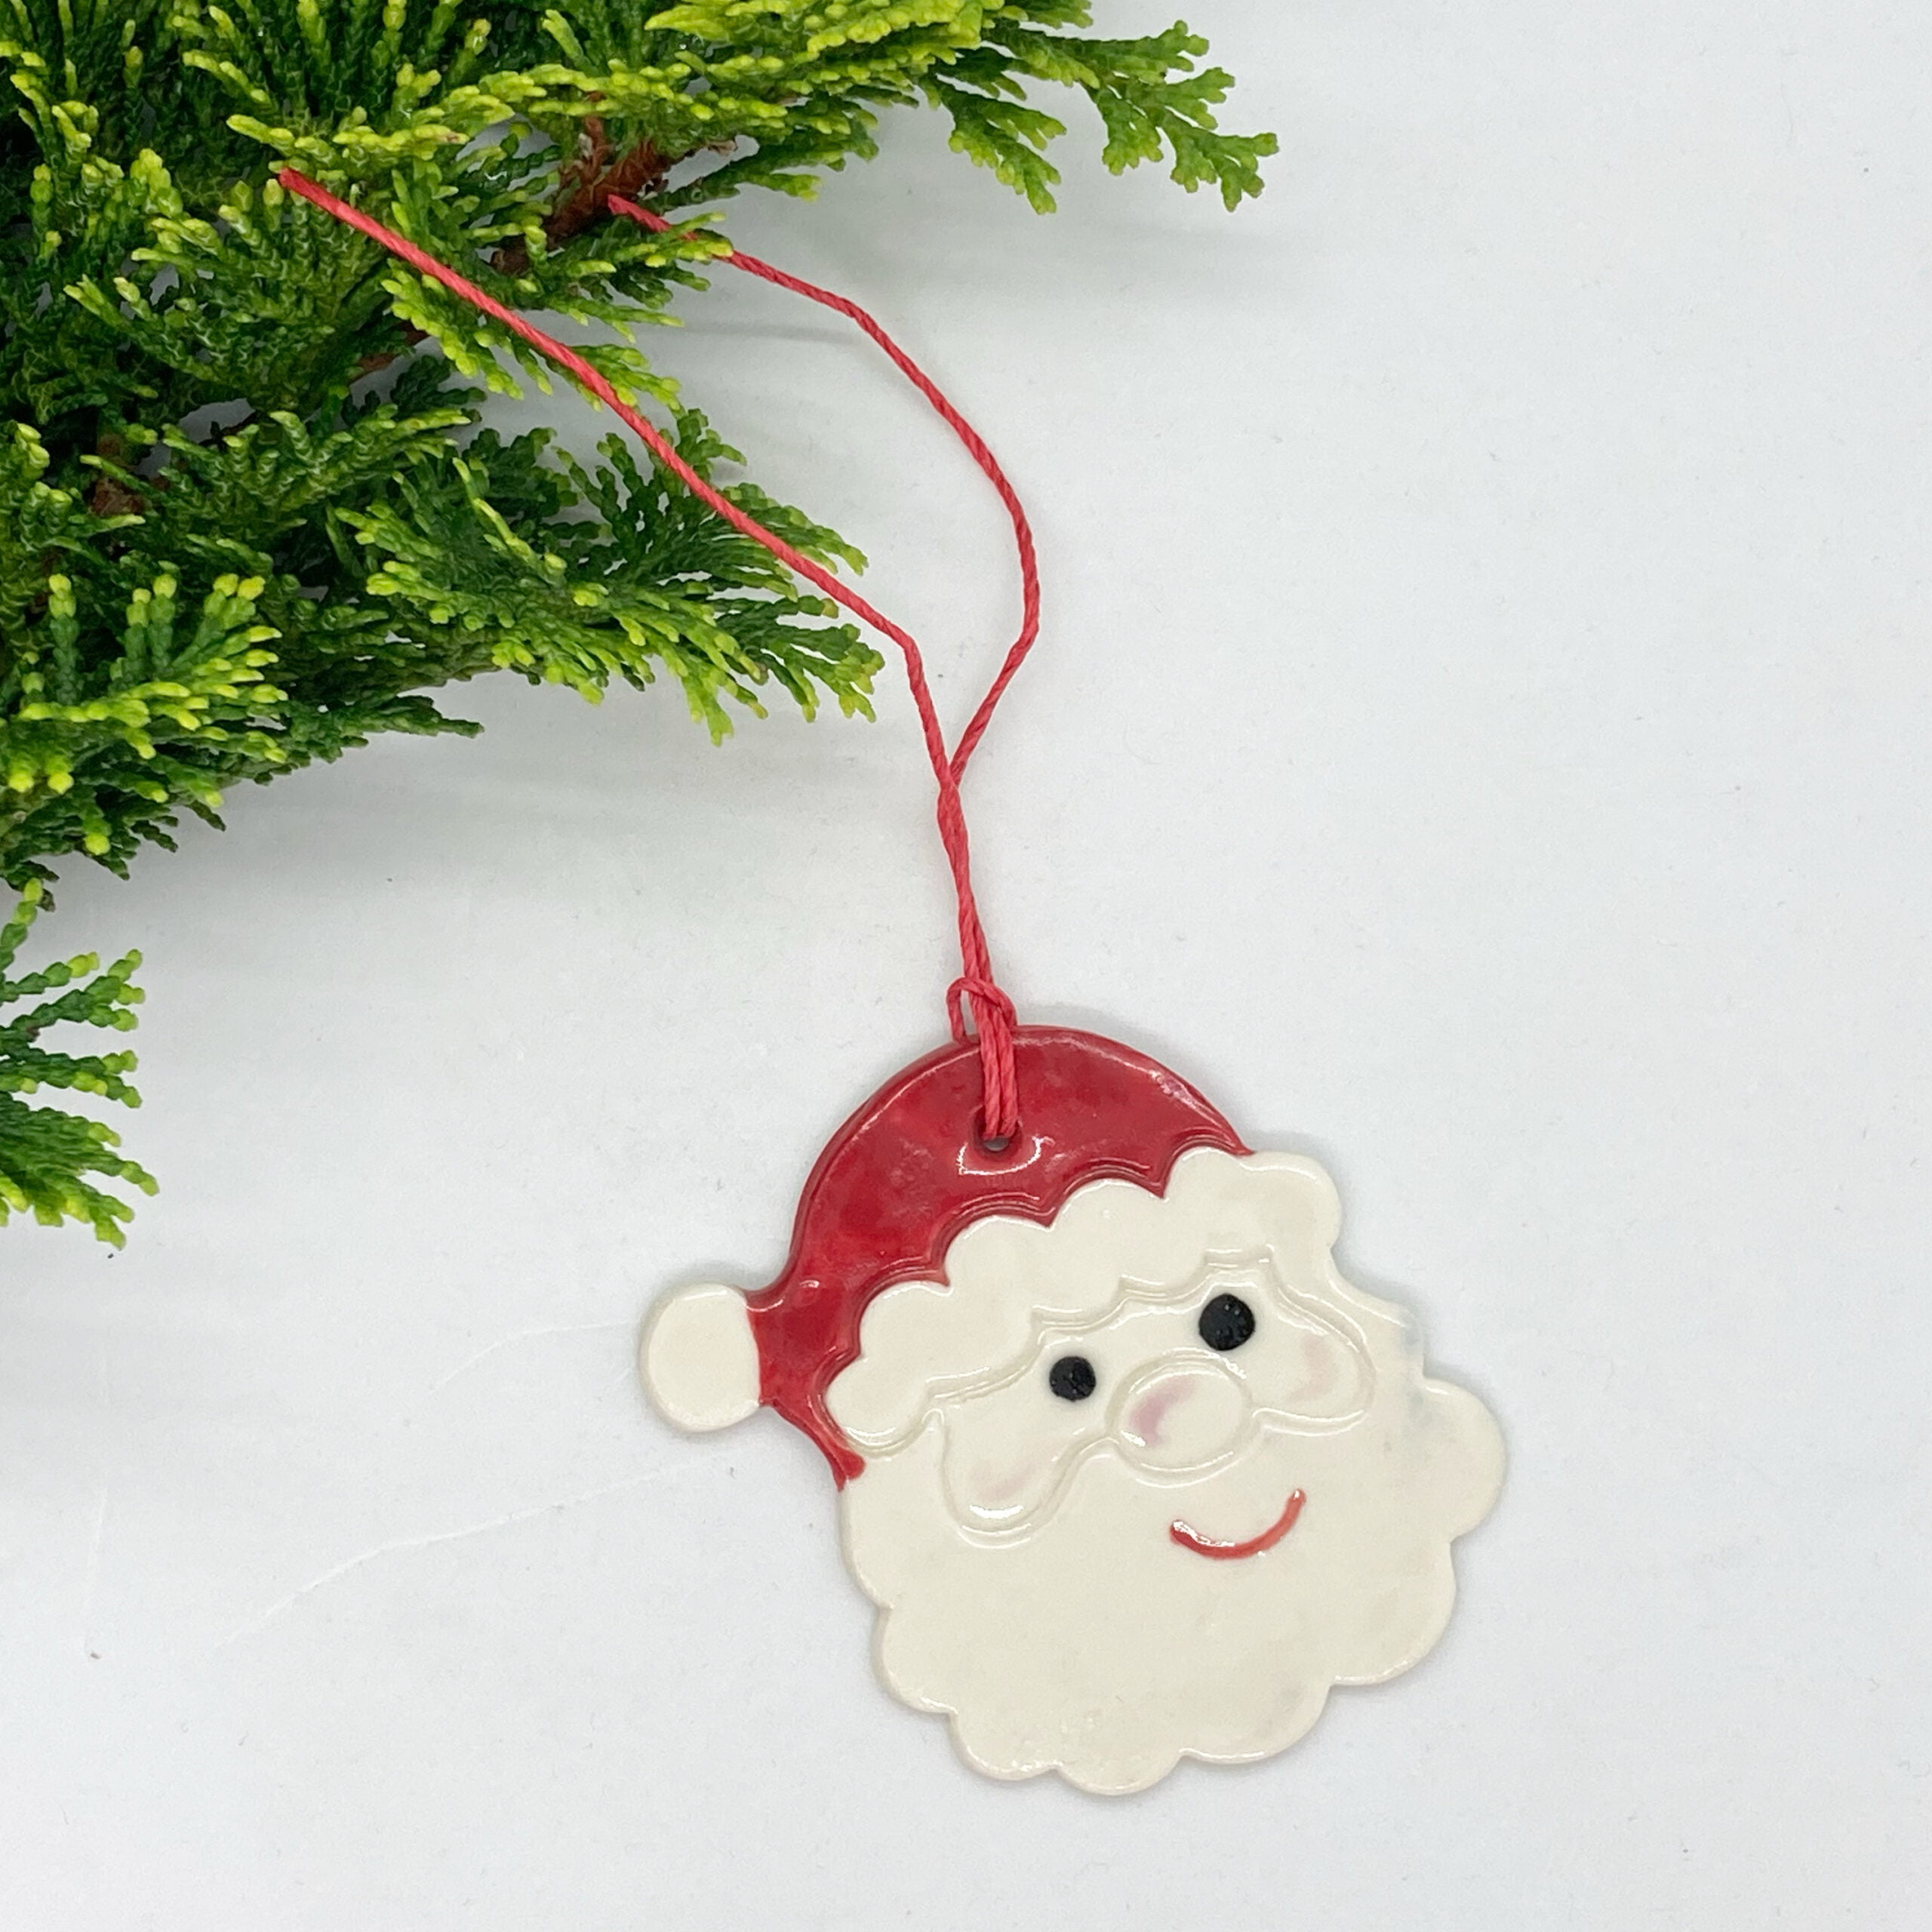 Father Christmas decorations